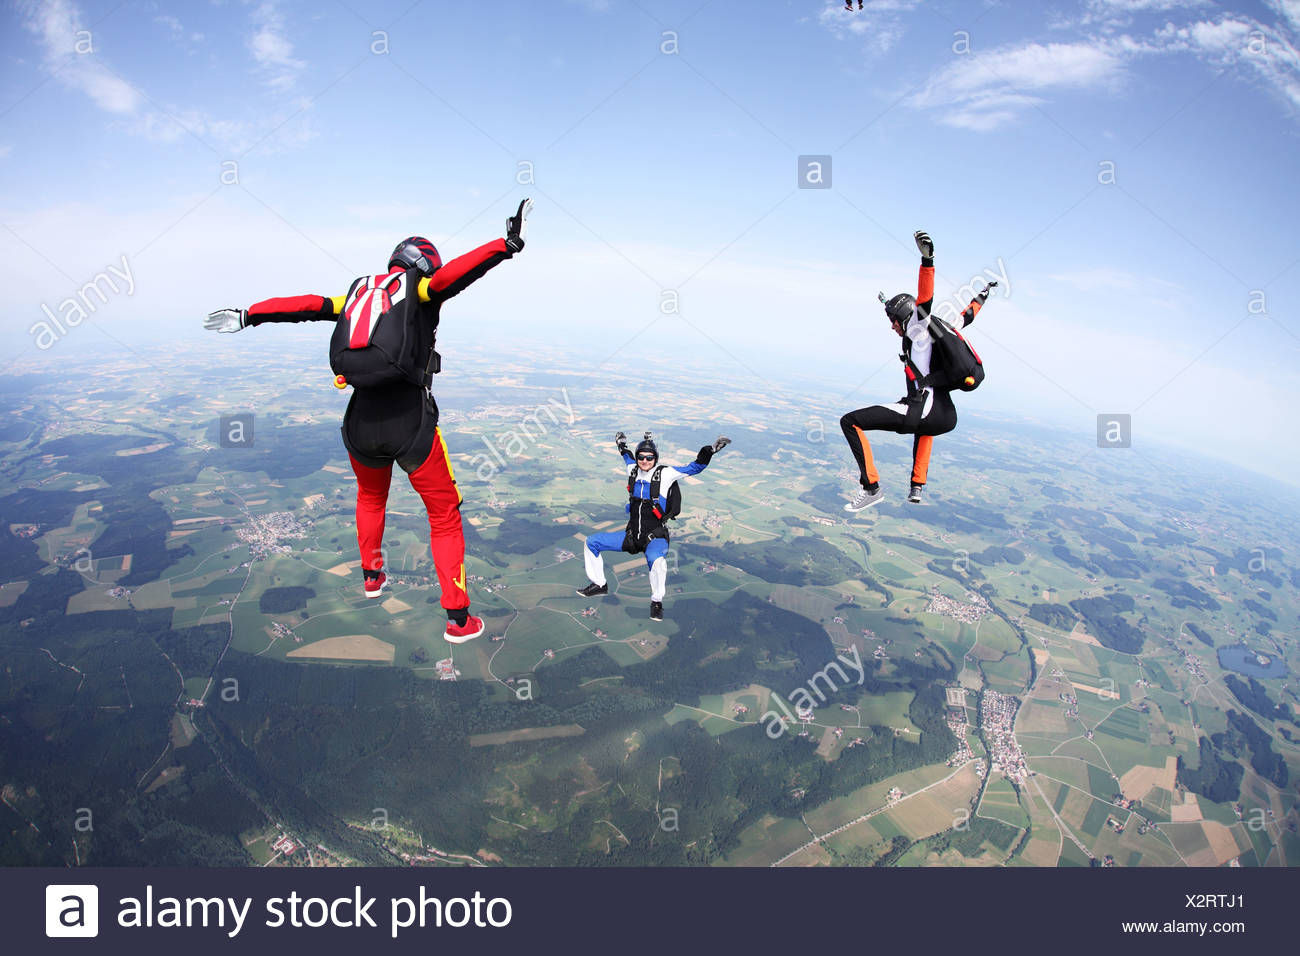 Trois parachutistes la chute libre au-dessus de Leutkirch, Bavaria, Germany Photo Stock